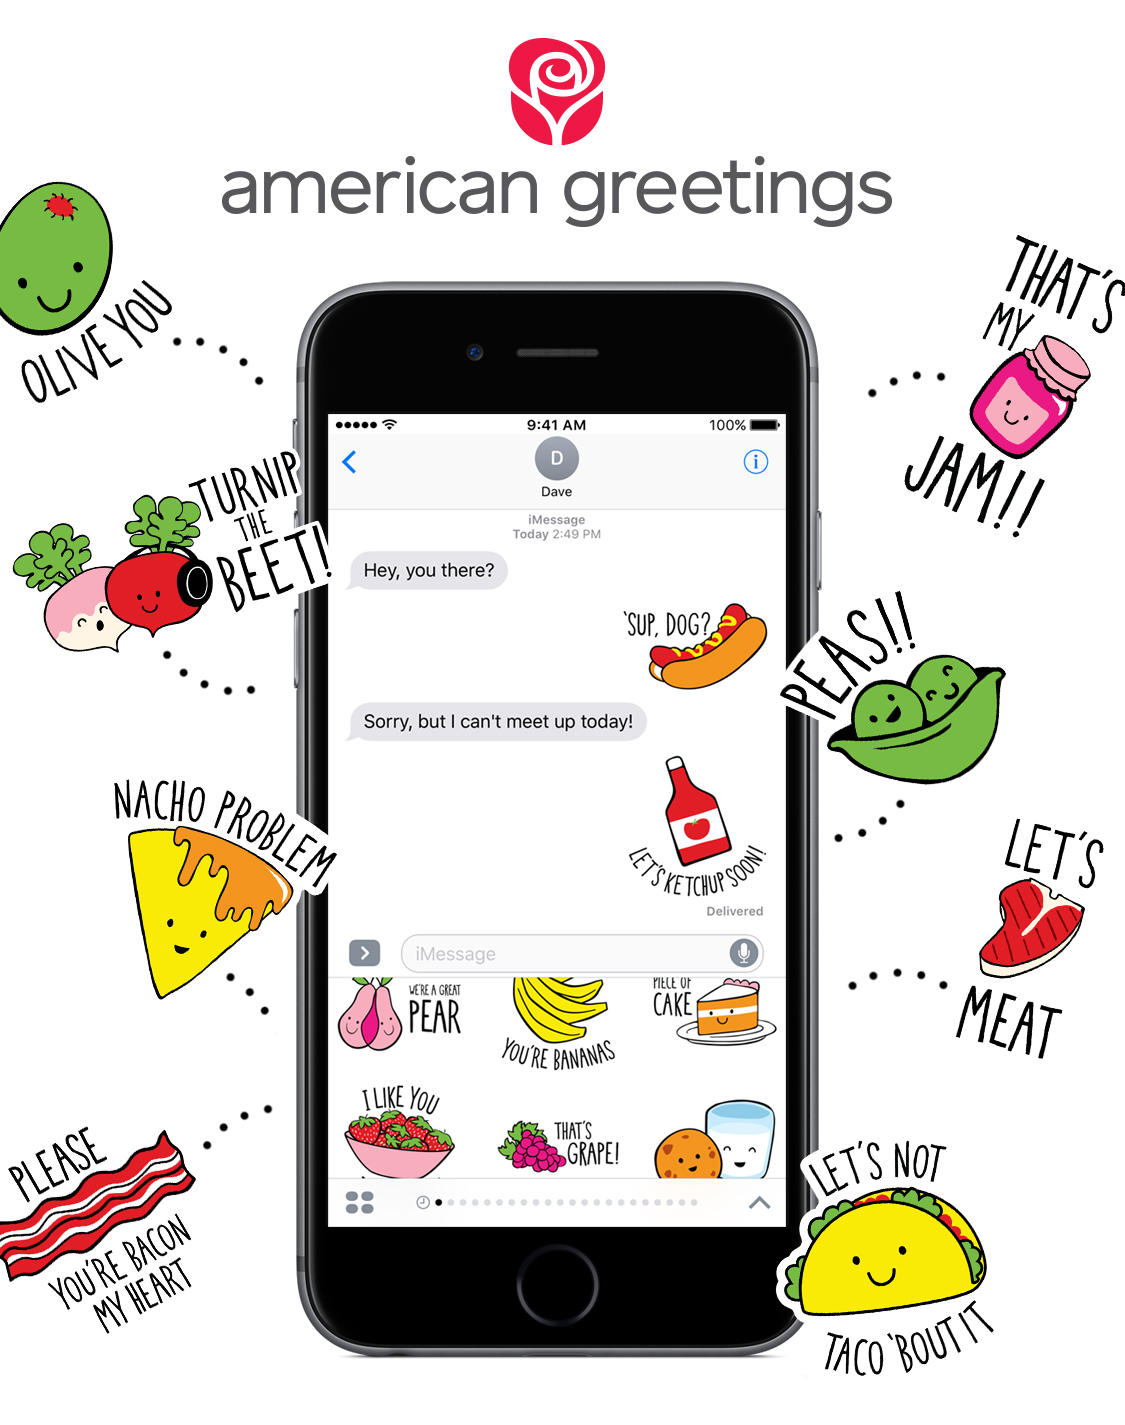 American greetings debuts brand new sticker packs for imessage image available m4hsunfo